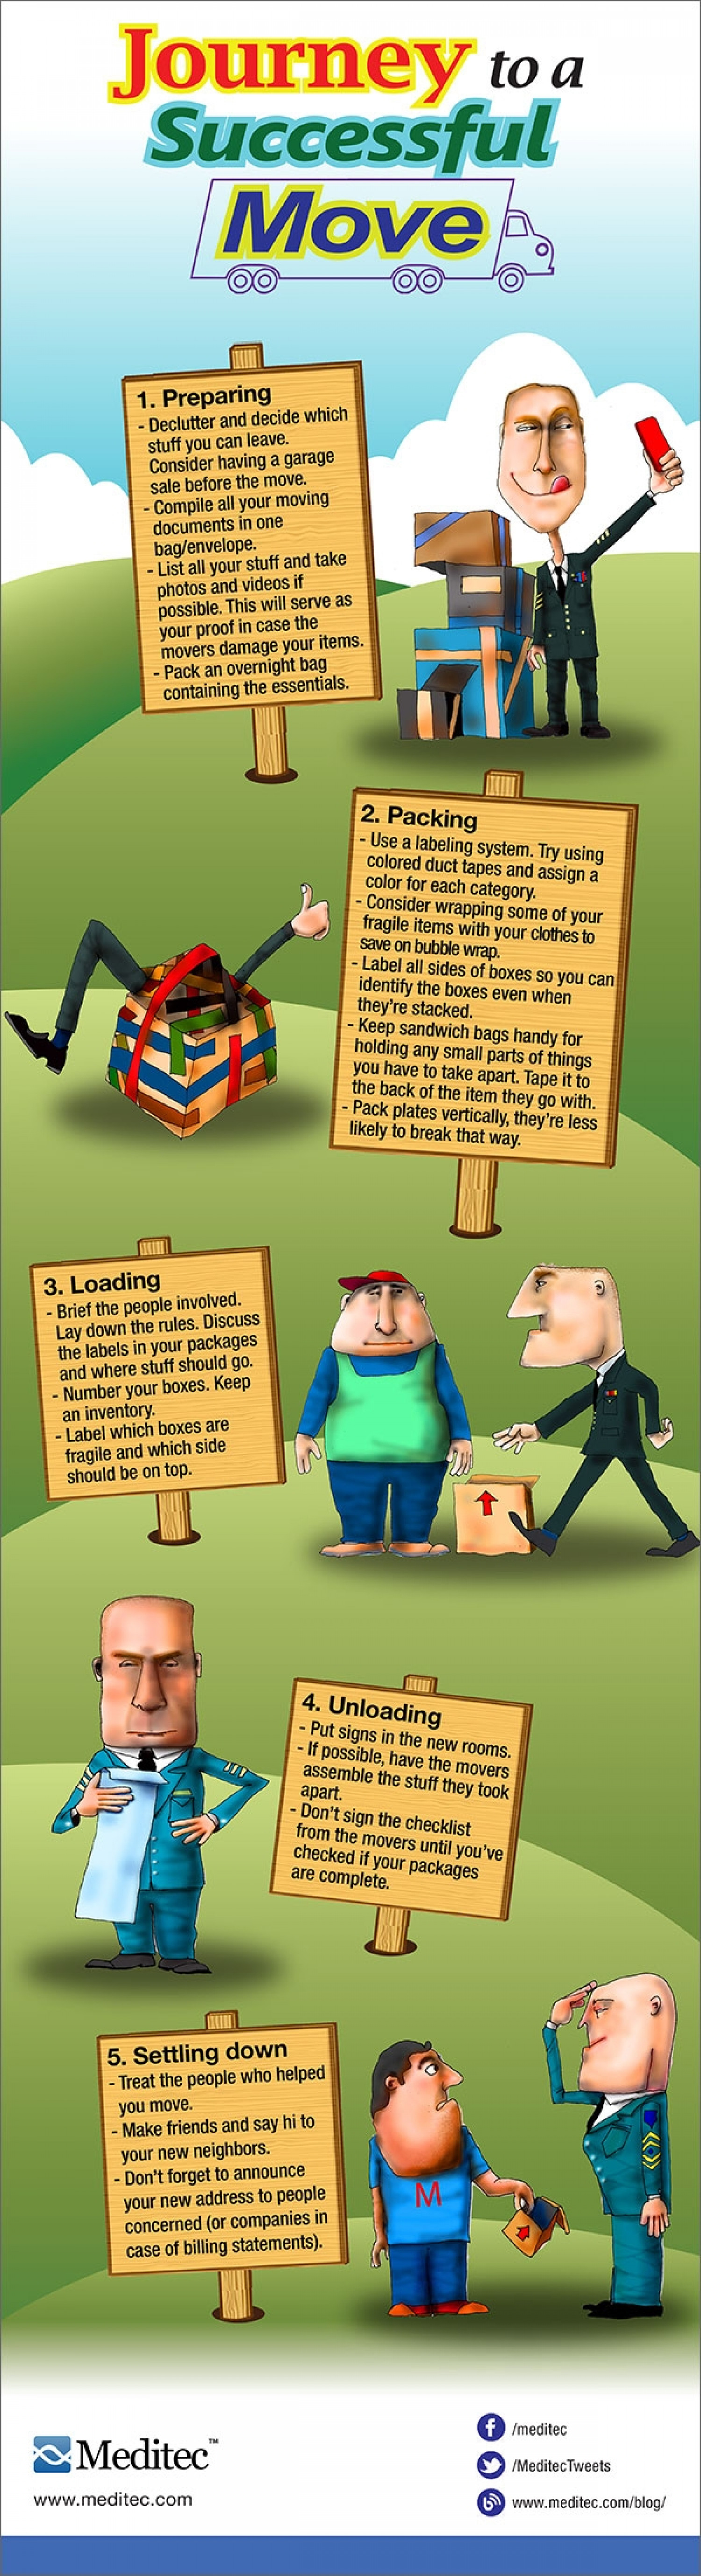 Journey To A Successful Move Infographic